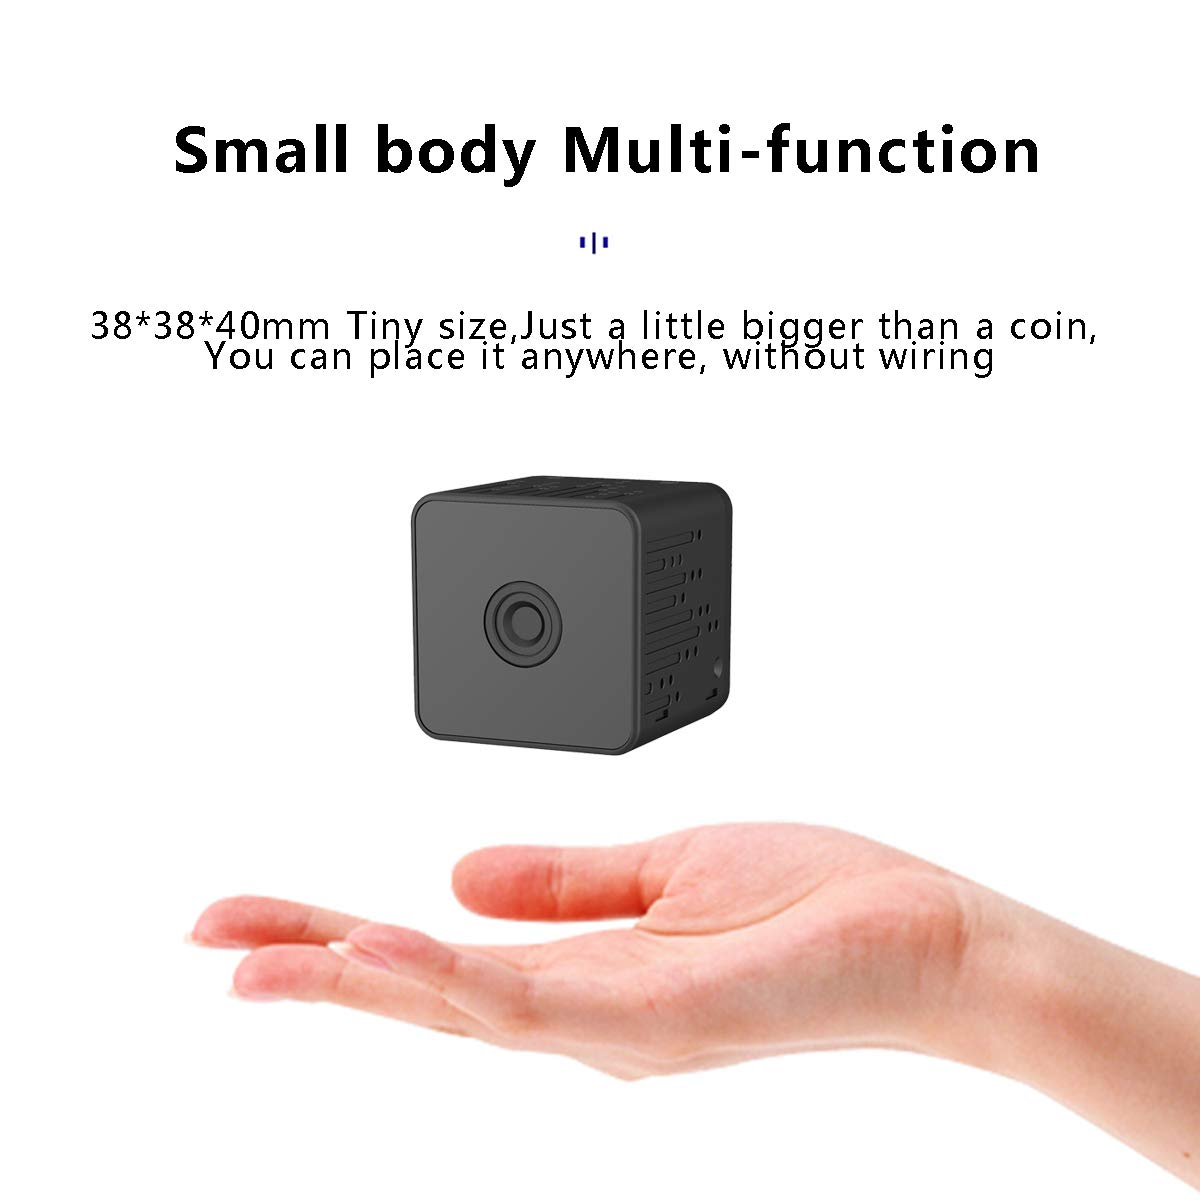 Mini Spy Camera - Halnziye HD 1080P Wireless WiFi Hidden Camera, Portable Small Nanny Camera Home Security Monitor with Night Vision/Motion Detection/Remote Viewing for Indoor, Car, Store, Office